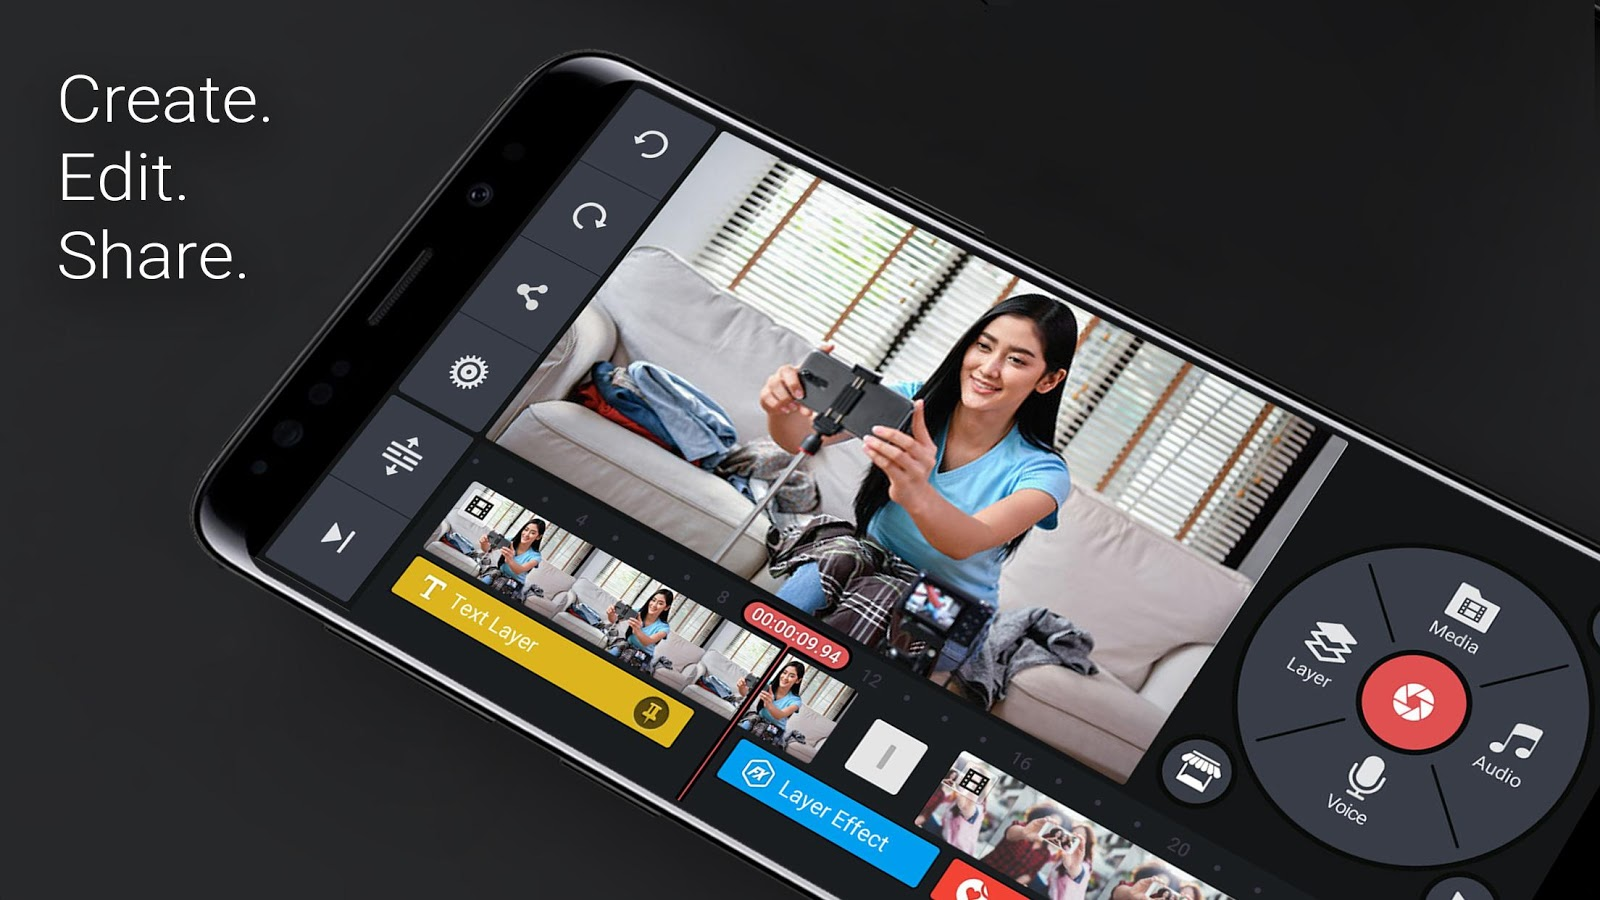 com nexstreaming app kinemasterfree 4 10 17 13457 GP APK Download